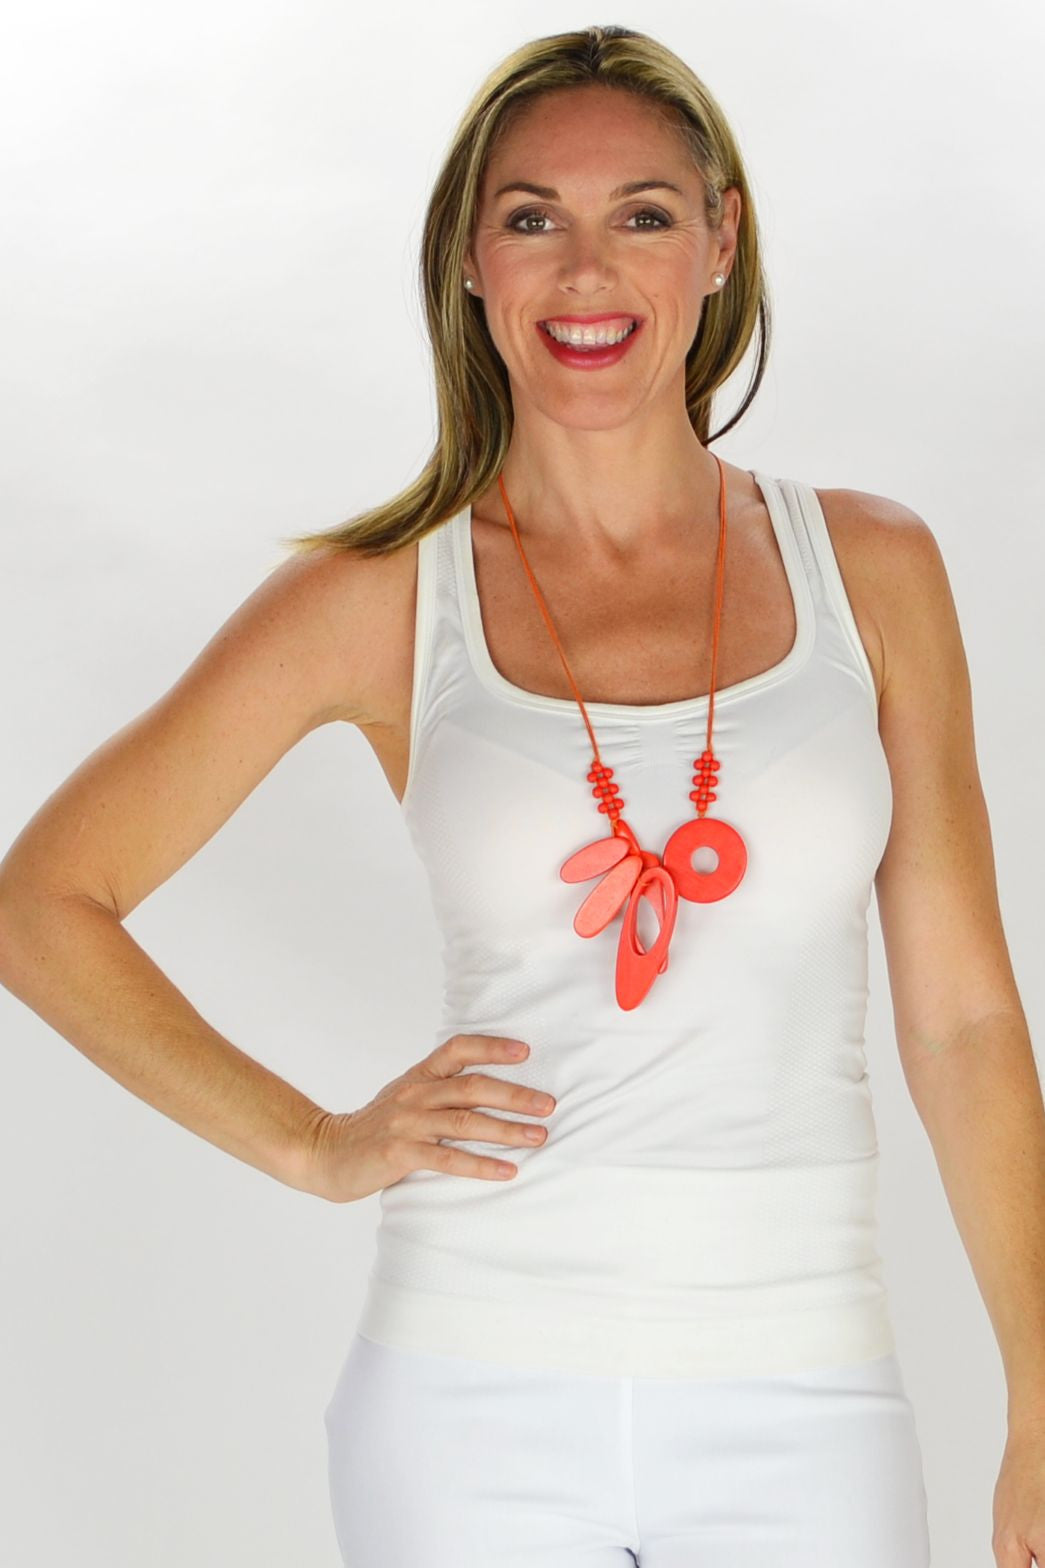 Debbies Orange Necklace - at I Love Tunics @ www.ilovetunics.com = Number One! Tunics Destination